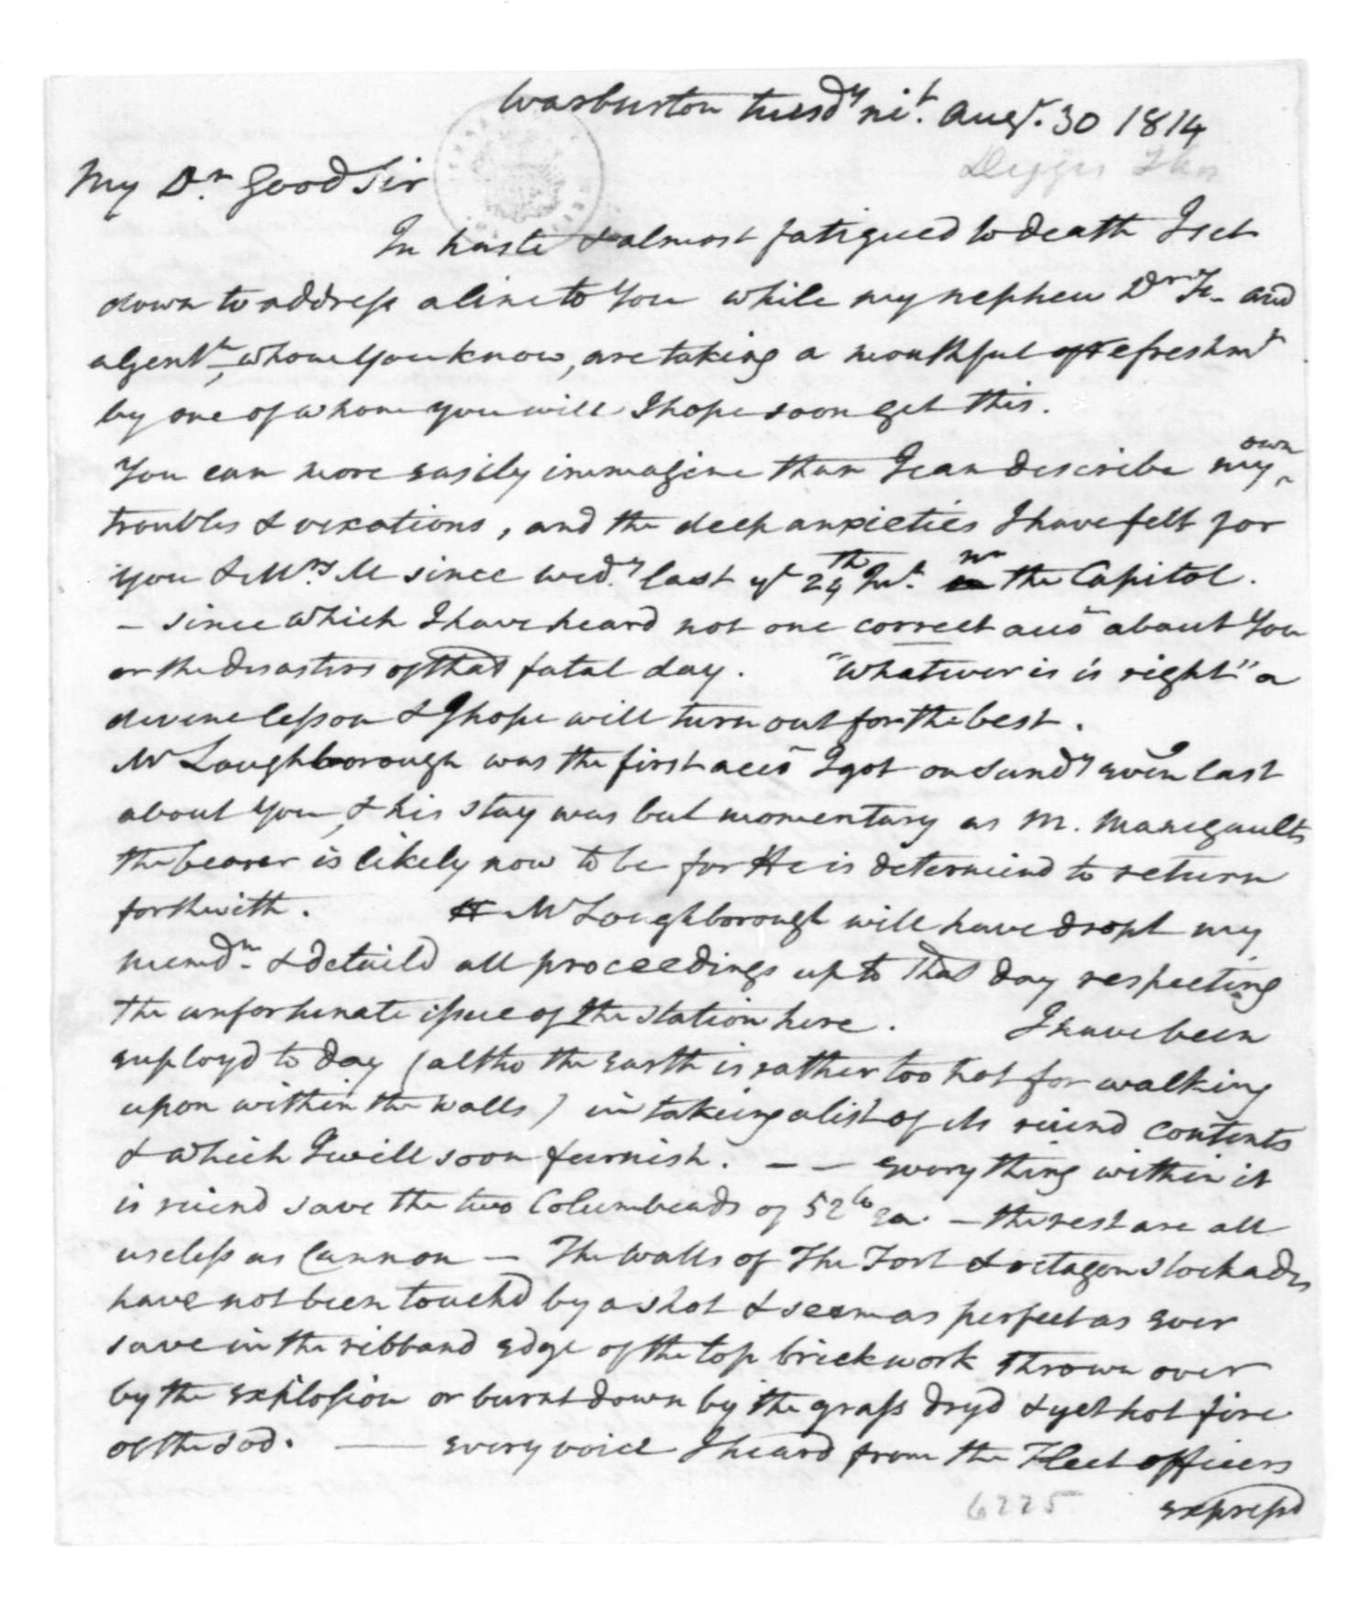 Thomas Digges to James Madison, August 30, 1814.